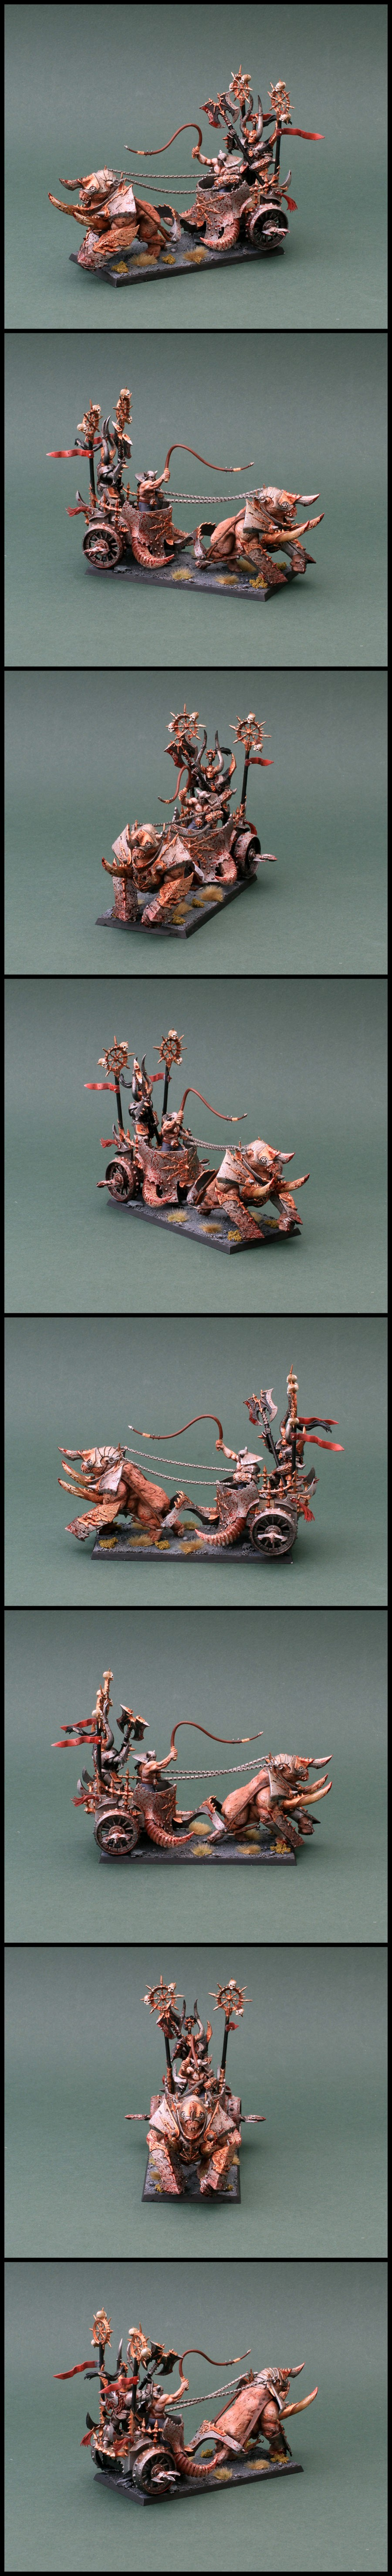 Warriors of Chaos - Gorebeast Chariot 2